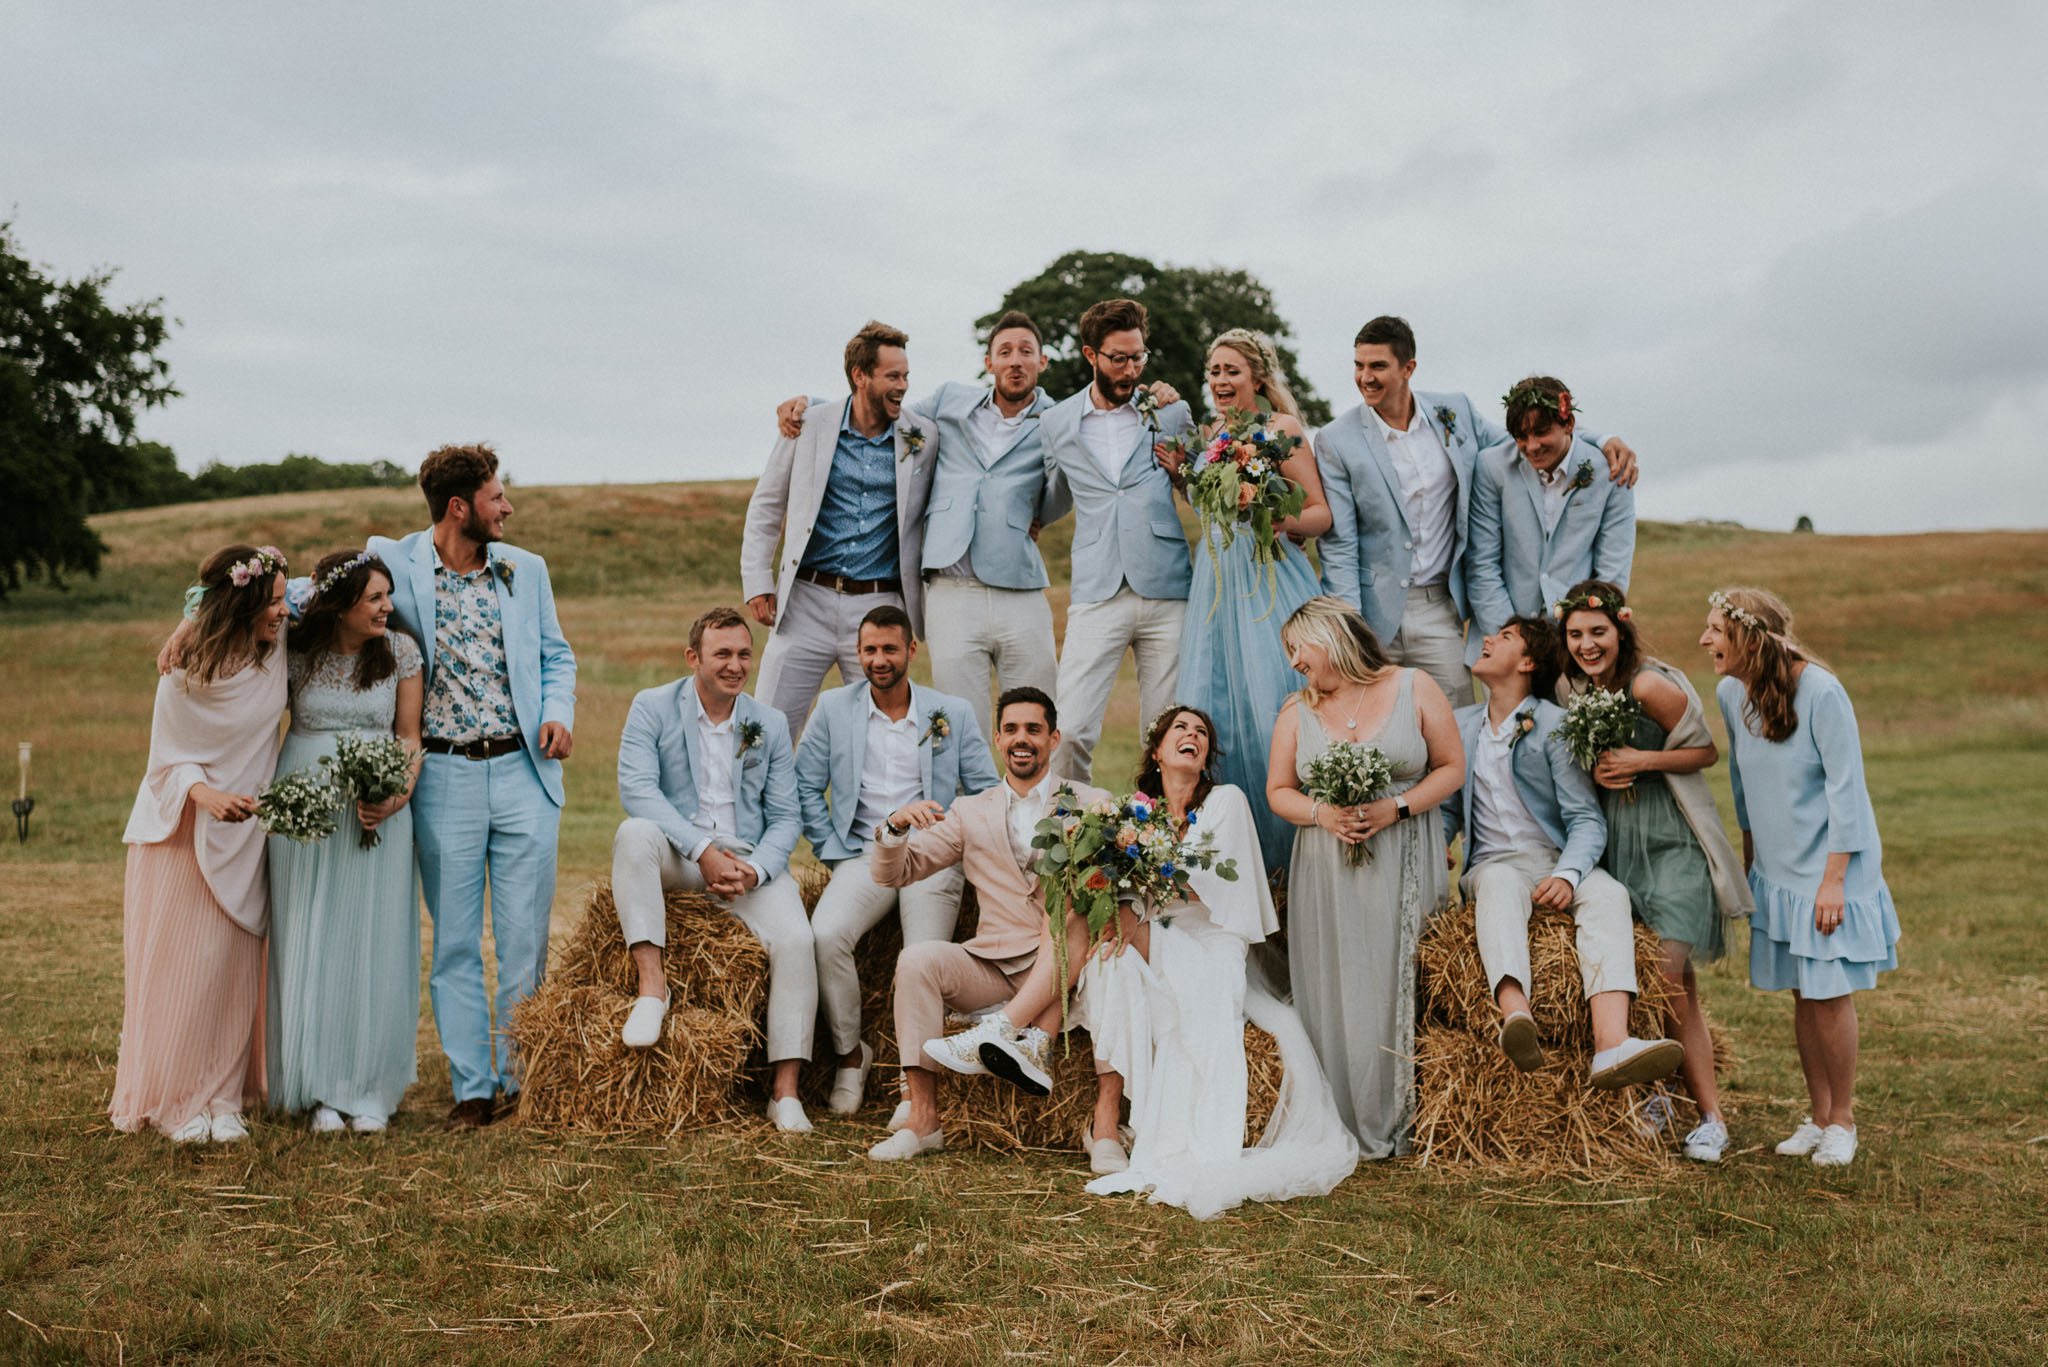 wedding party with bride and groom in a field